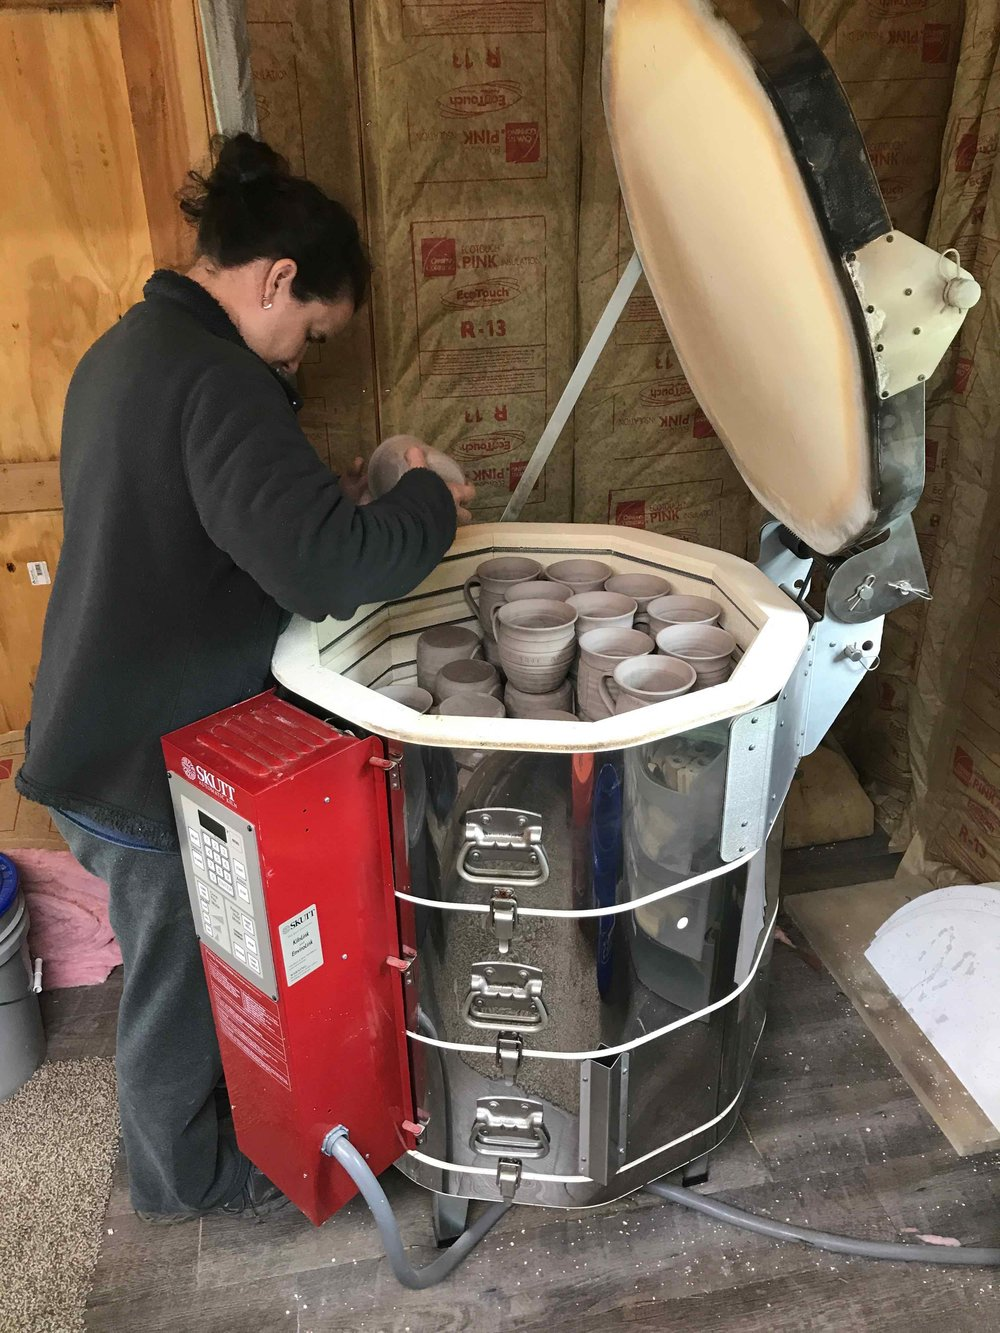 Dana is one of the greatest packing geniuses of all time.  She knows how to utilize every inch of space whether packing for a long family trip, or a kiln full of pots.